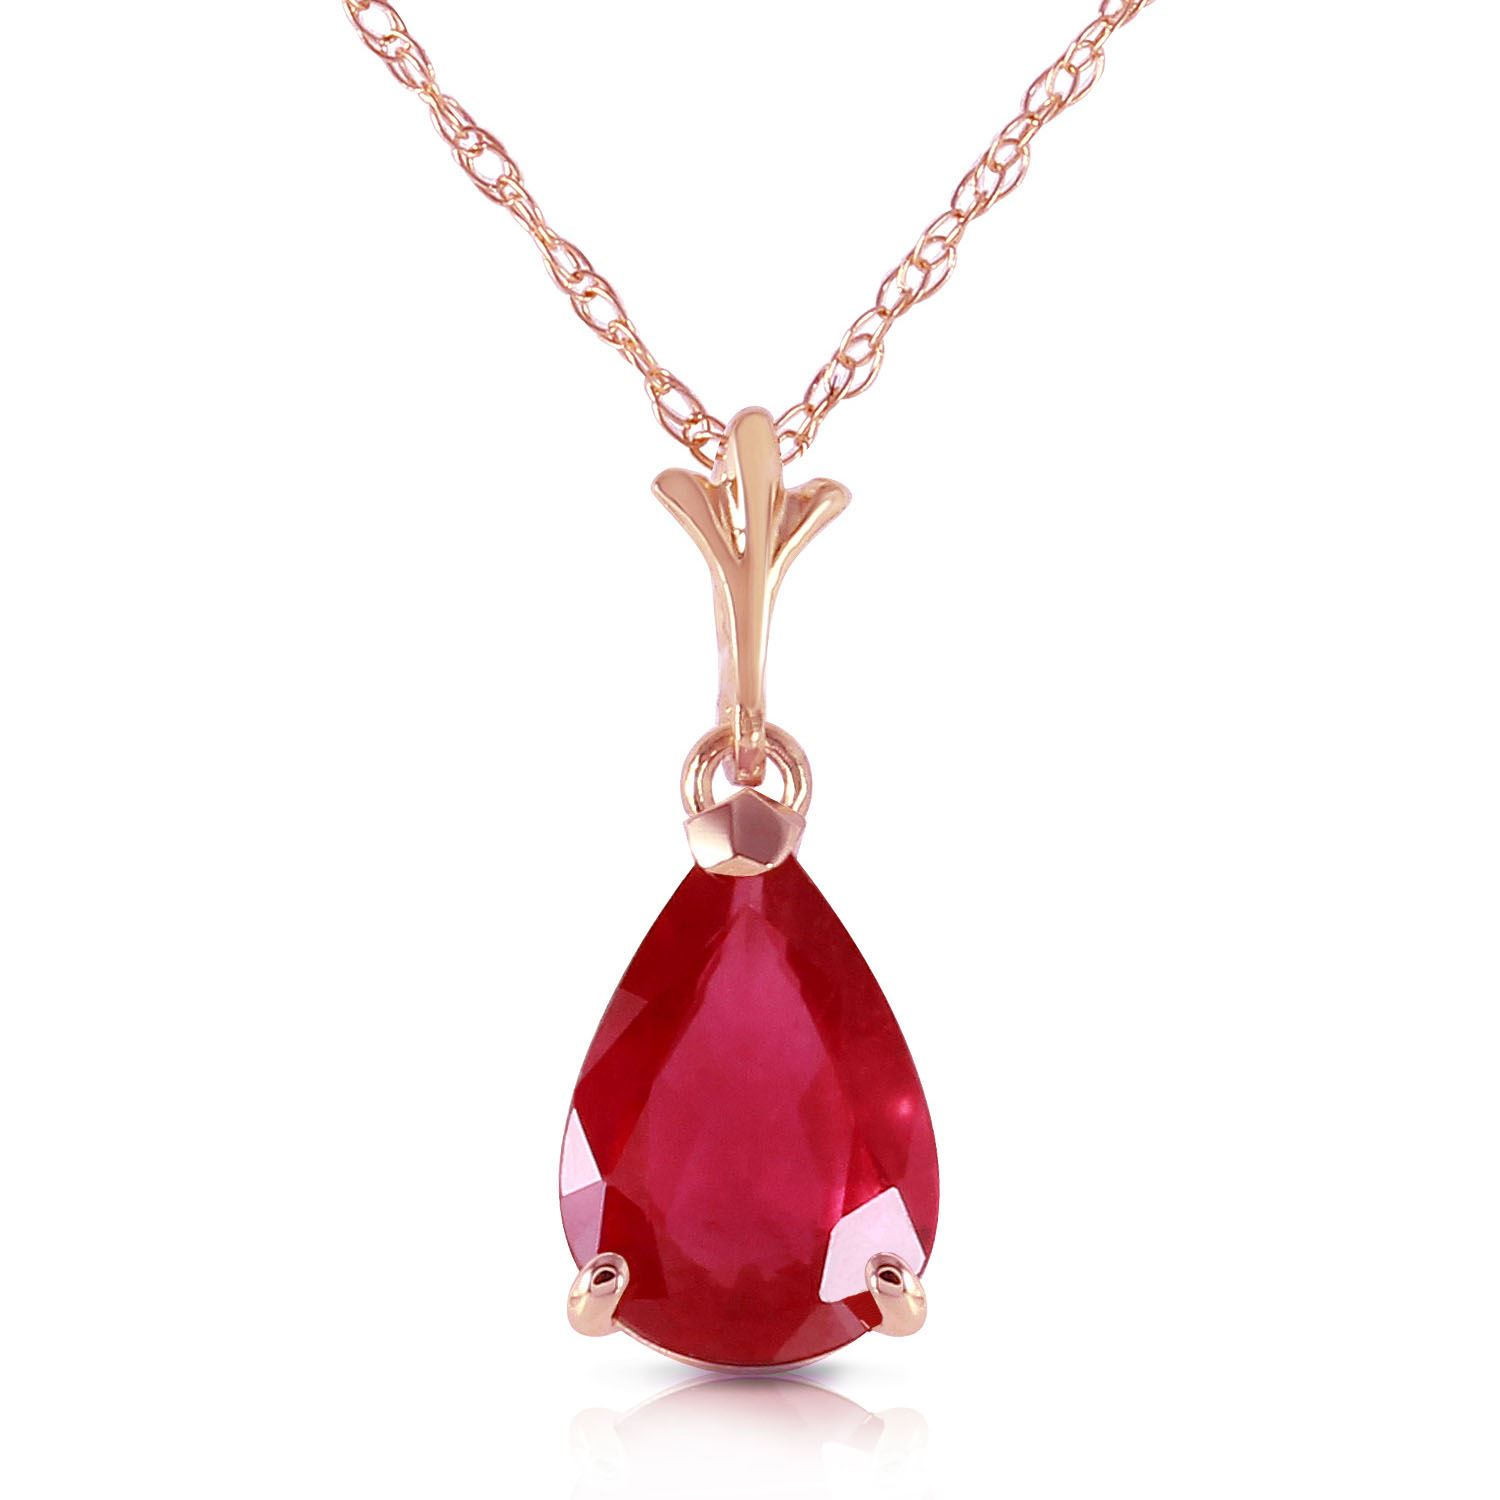 necklace chain necklaces collections products ruby gold red pendants pendant cut gemstone two oval tone esdomera ch